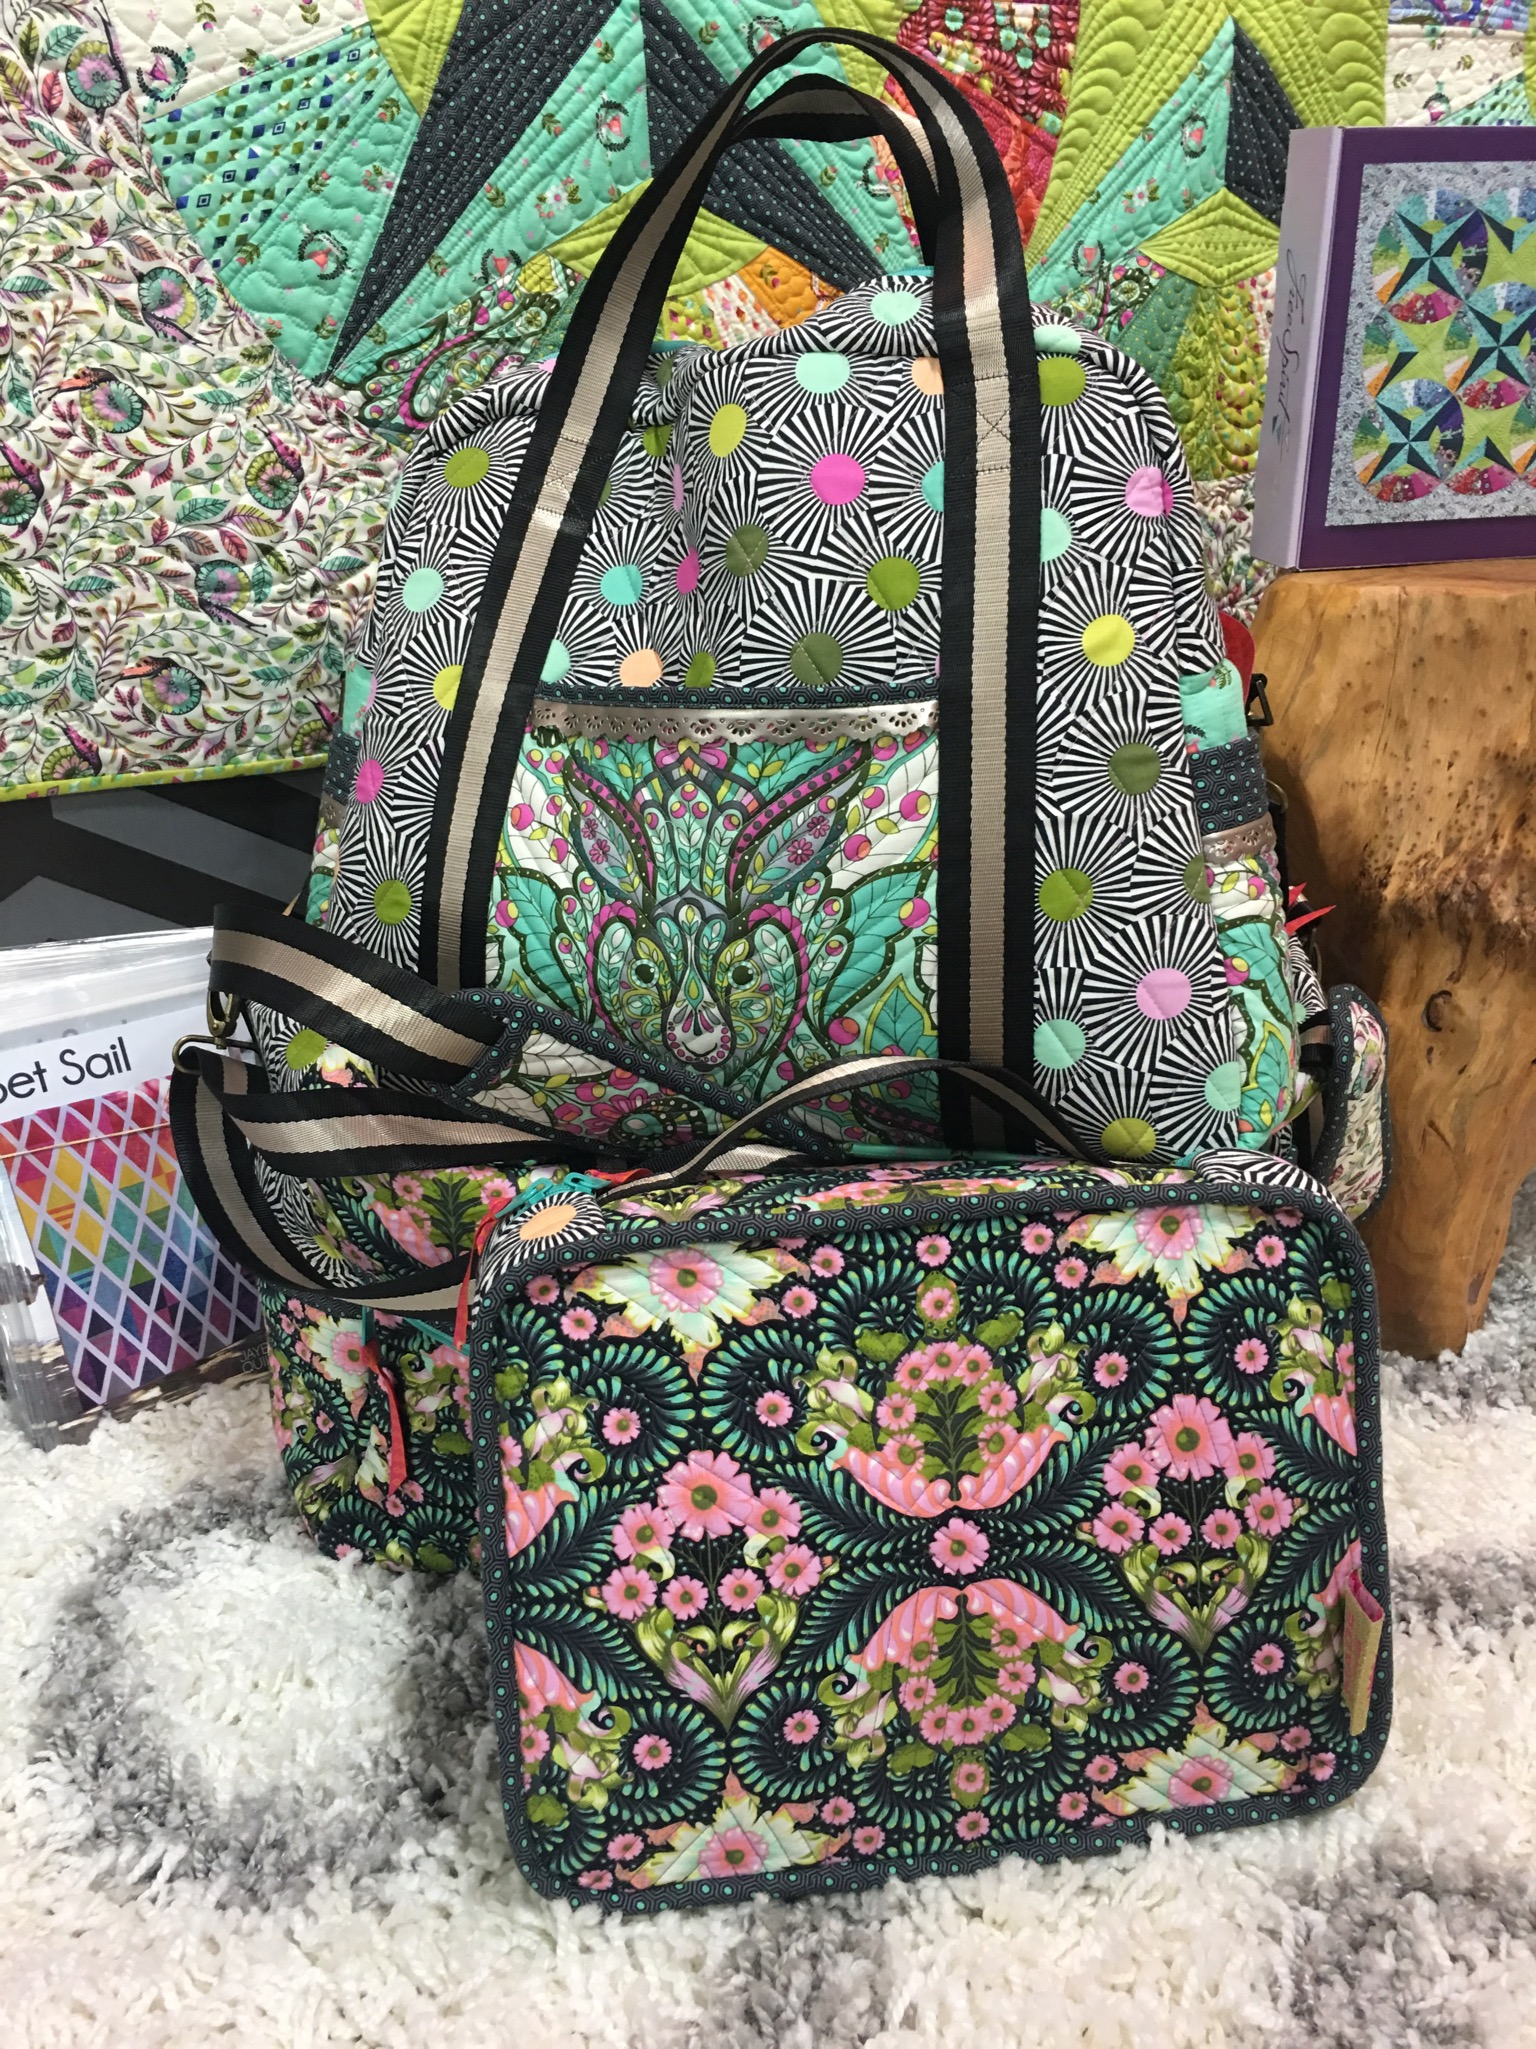 Tula Pink's Travel Bags made with Slow and Steady Fabric